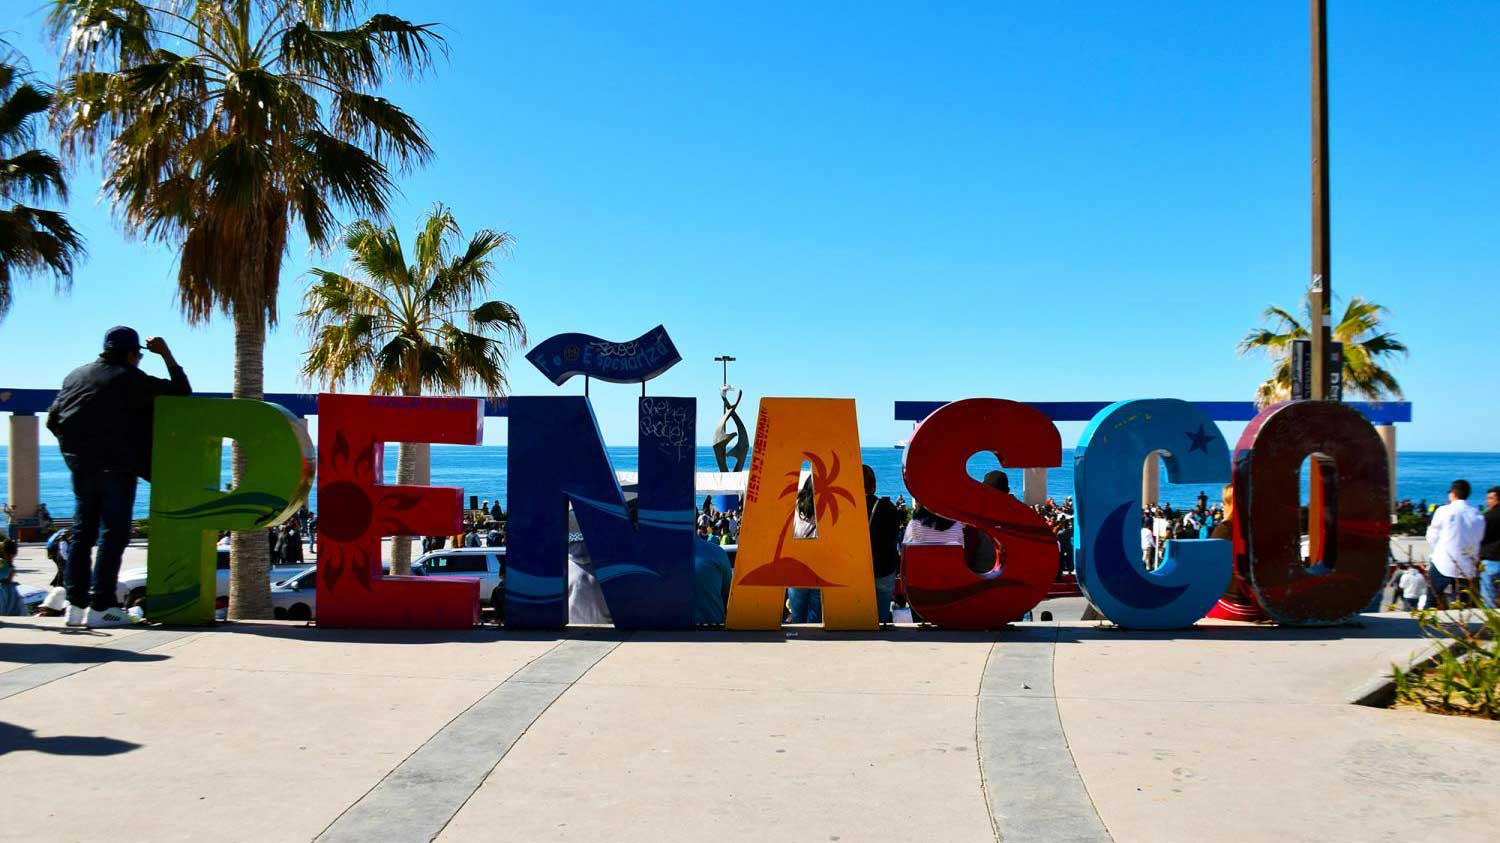 The Sonoran beach town Puerto Peñasco is a popular destination for Arizona tourists.